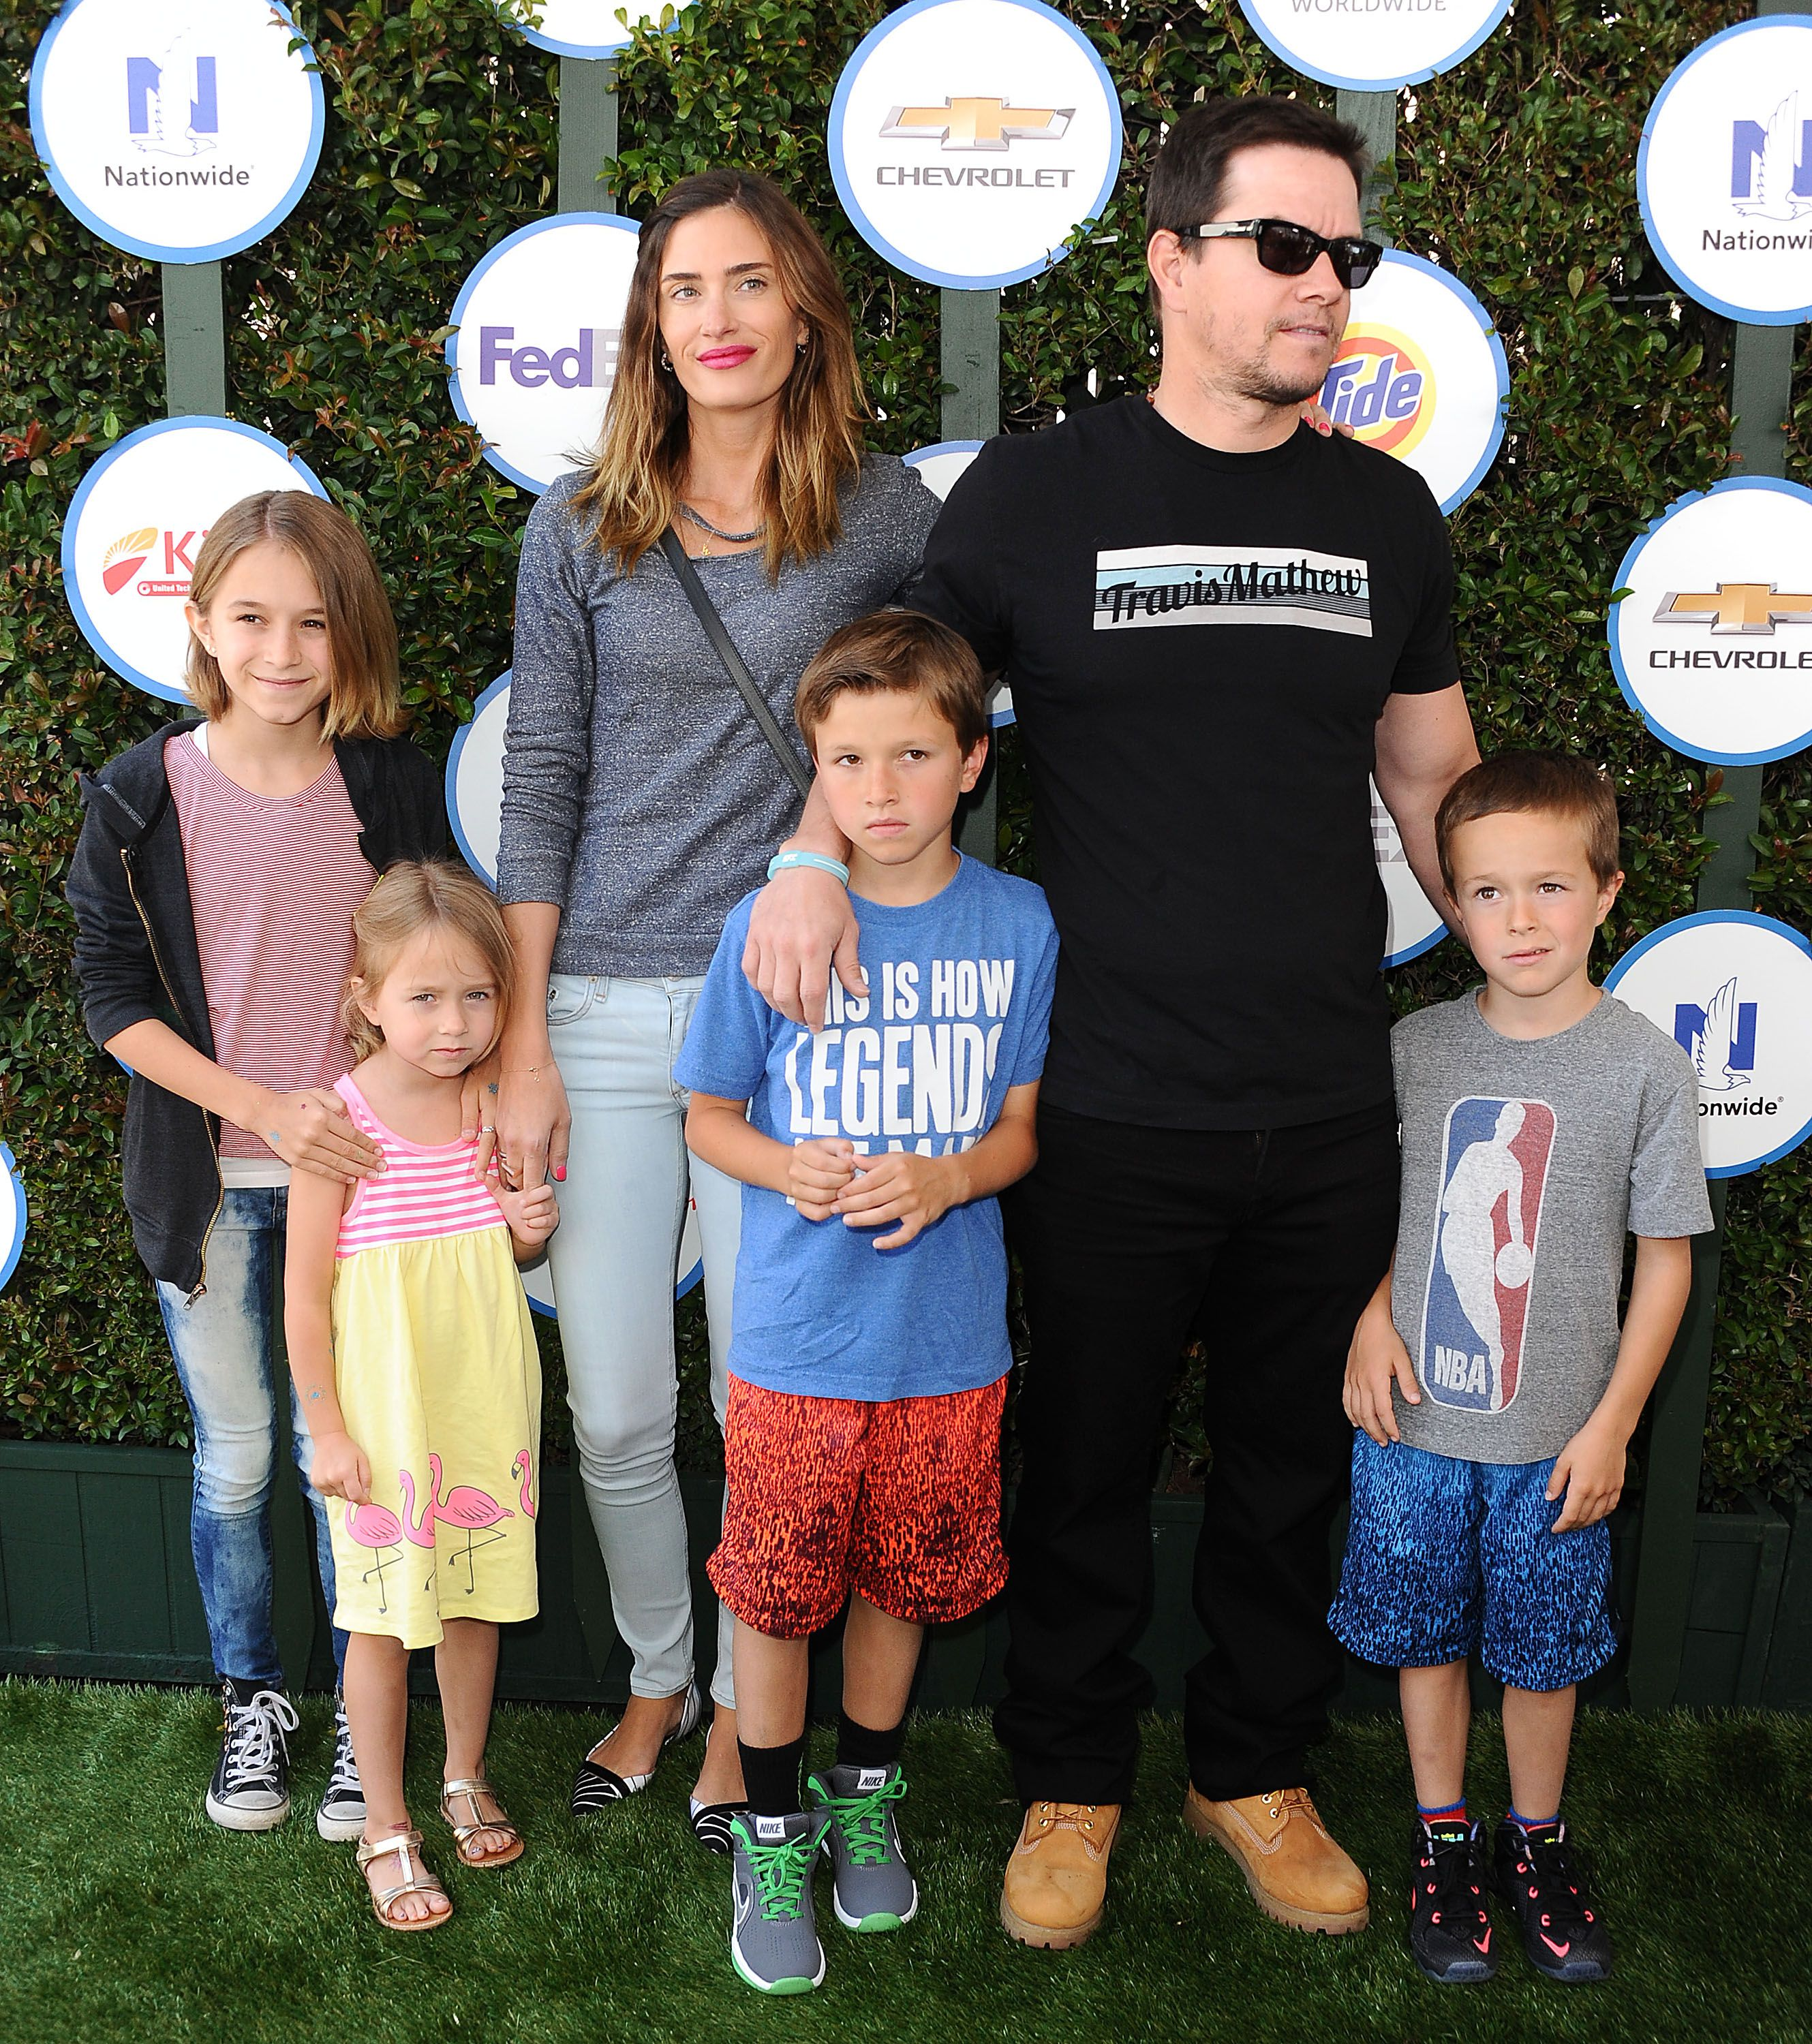 Mark Wahlberg and Rhea Durham alongside their kids attend Safe Kids Day at The Lot on April 26, 2015 in West Hollywood, California. | Photo: Getty Images